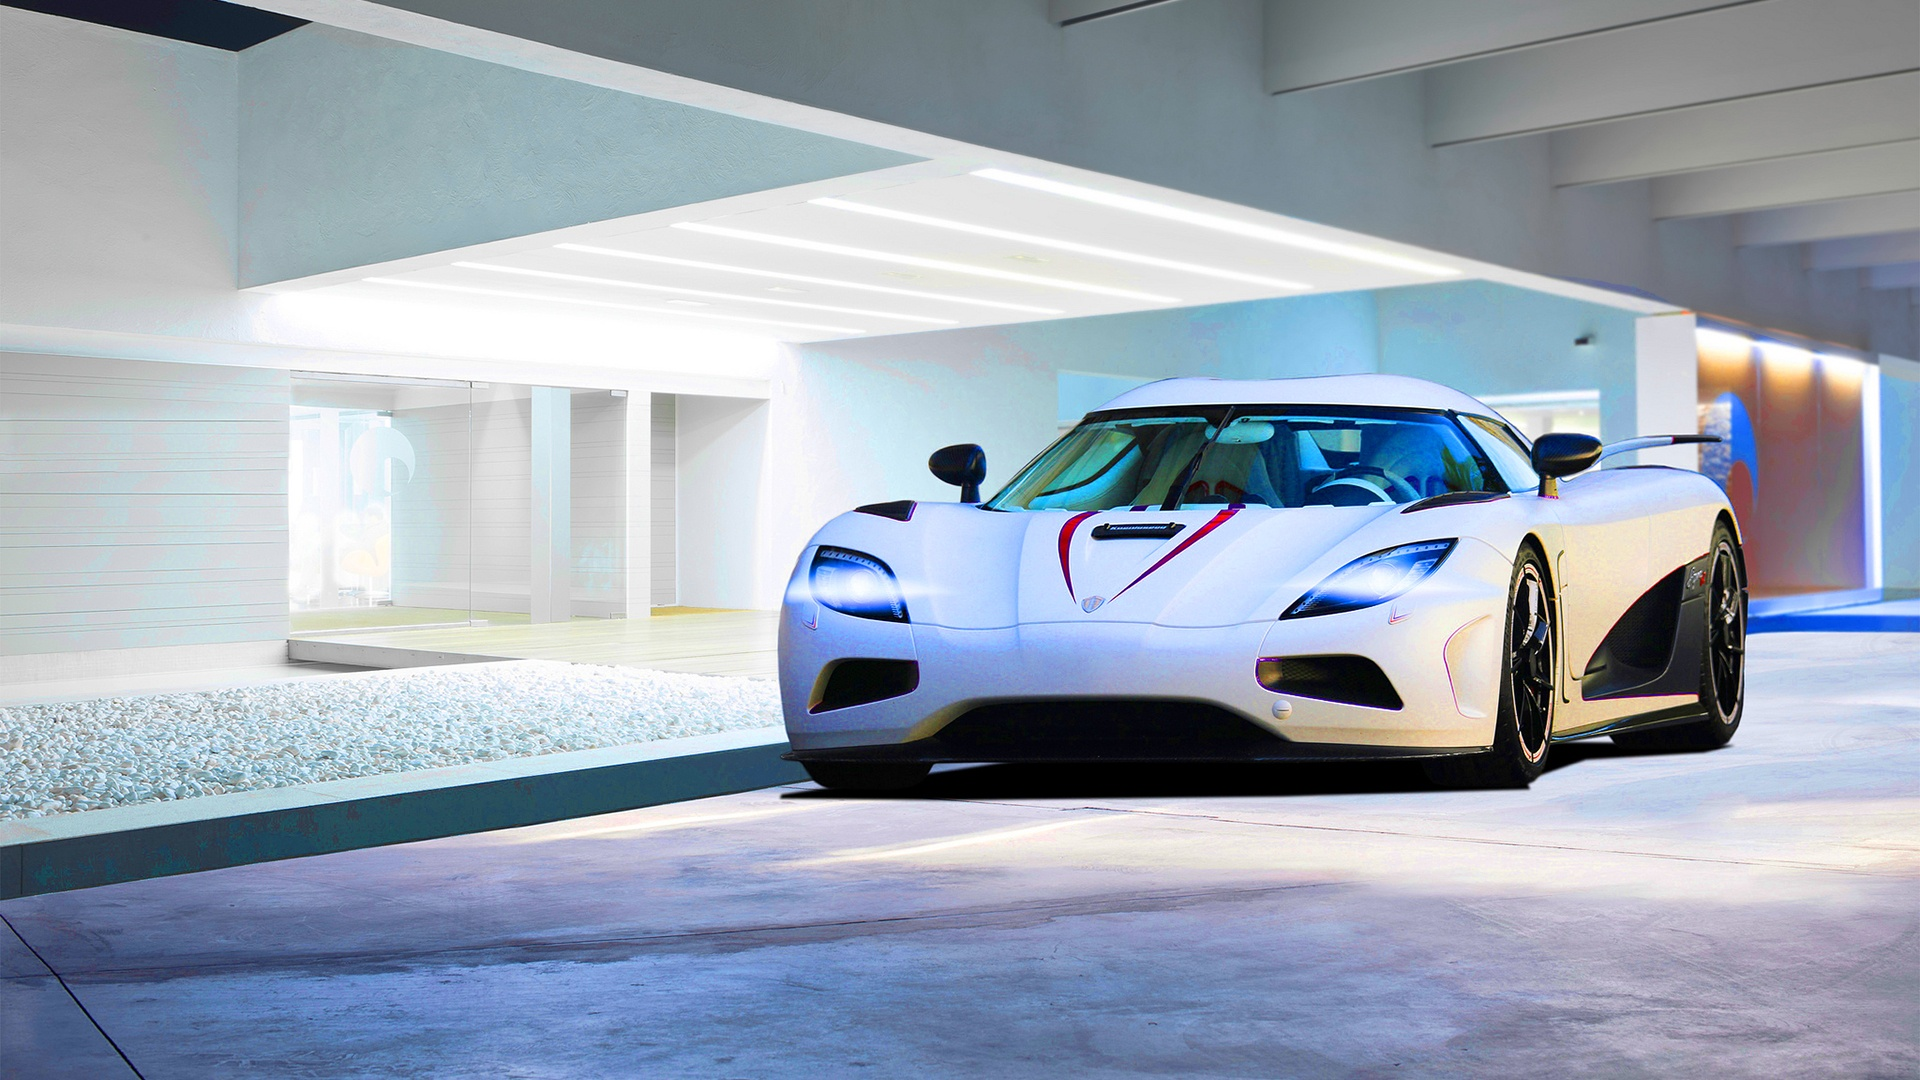 Download Wallpaper Mobil Agera Wallpaper Jawa